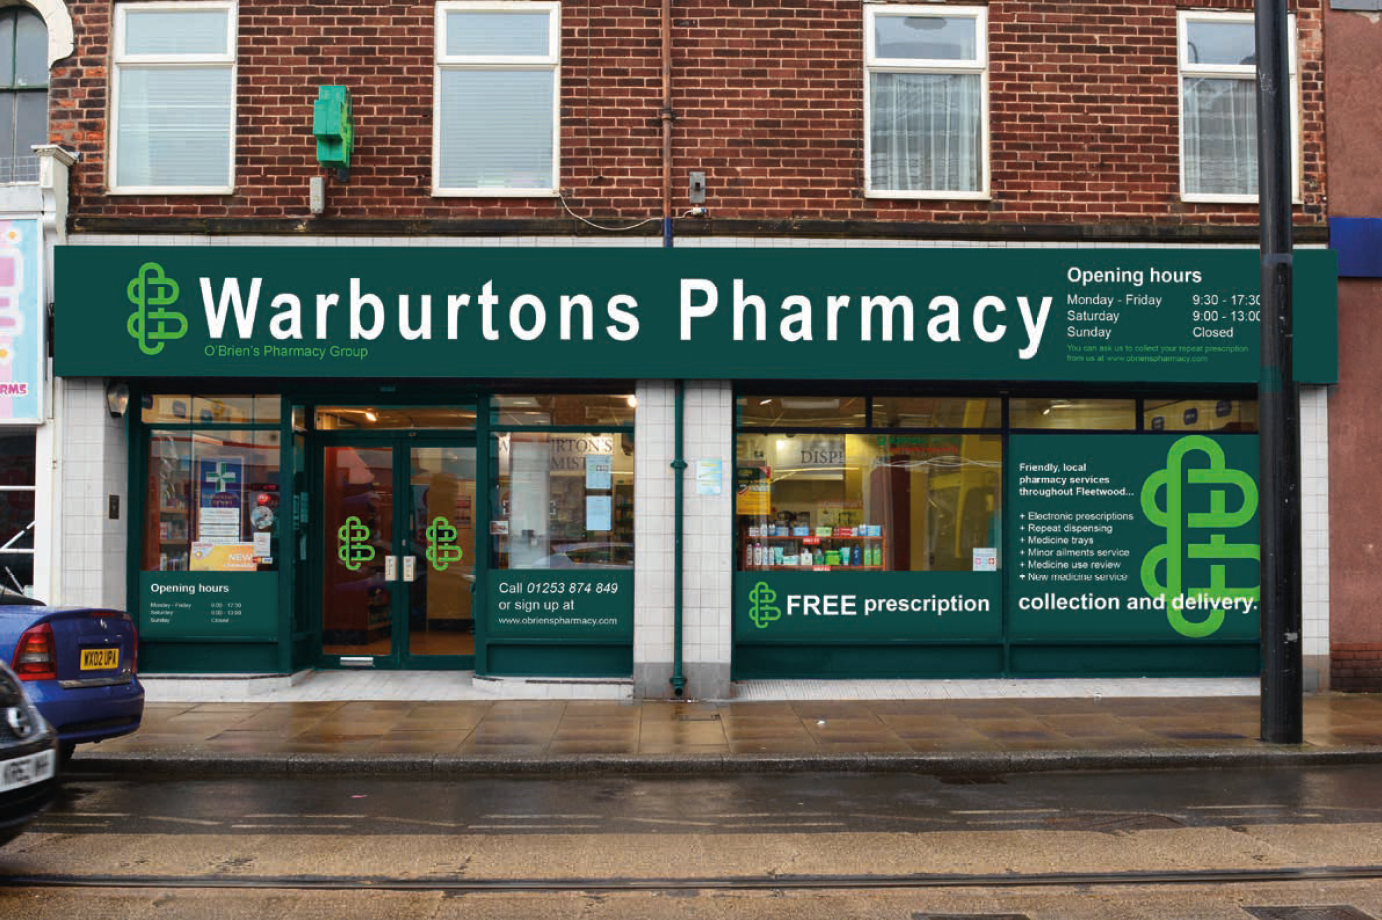 DOSE Design and Marketing O'Brien's Pharmacy Signage Scheme Warburtons Exterior